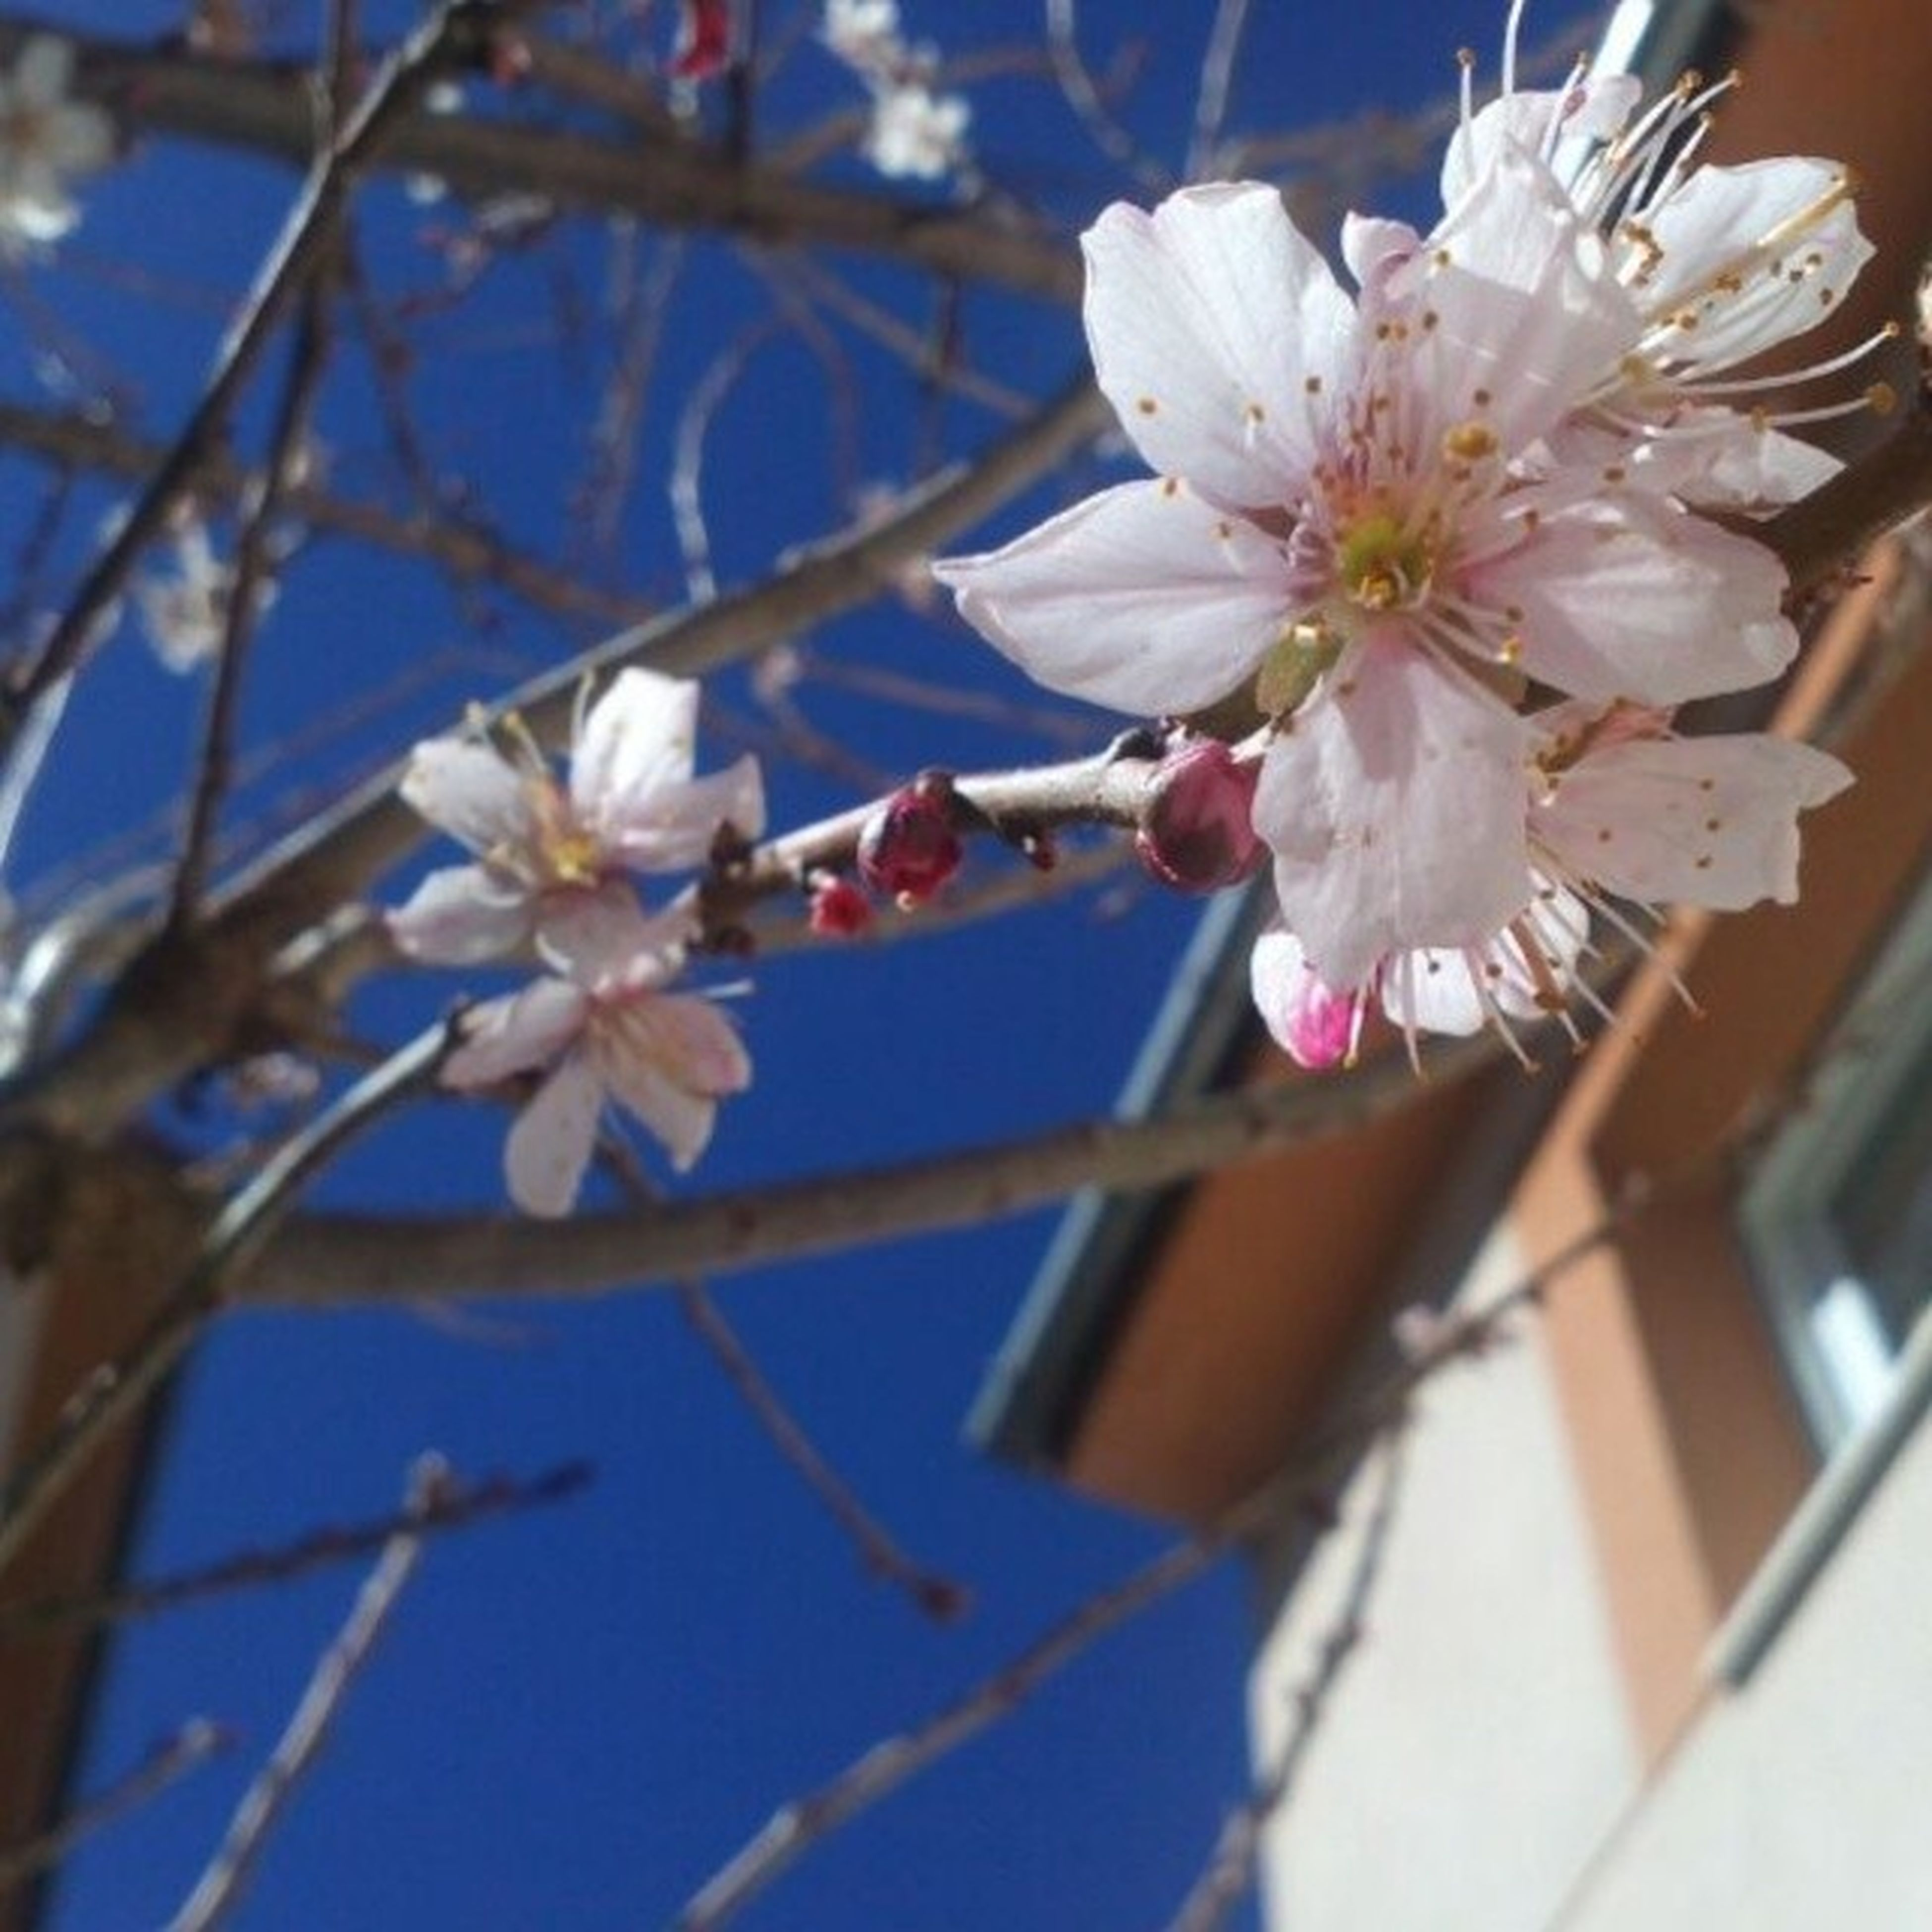 flower, freshness, fragility, petal, white color, cherry blossom, growth, branch, focus on foreground, blossom, beauty in nature, nature, blooming, close-up, flower head, in bloom, low angle view, tree, twig, pollen